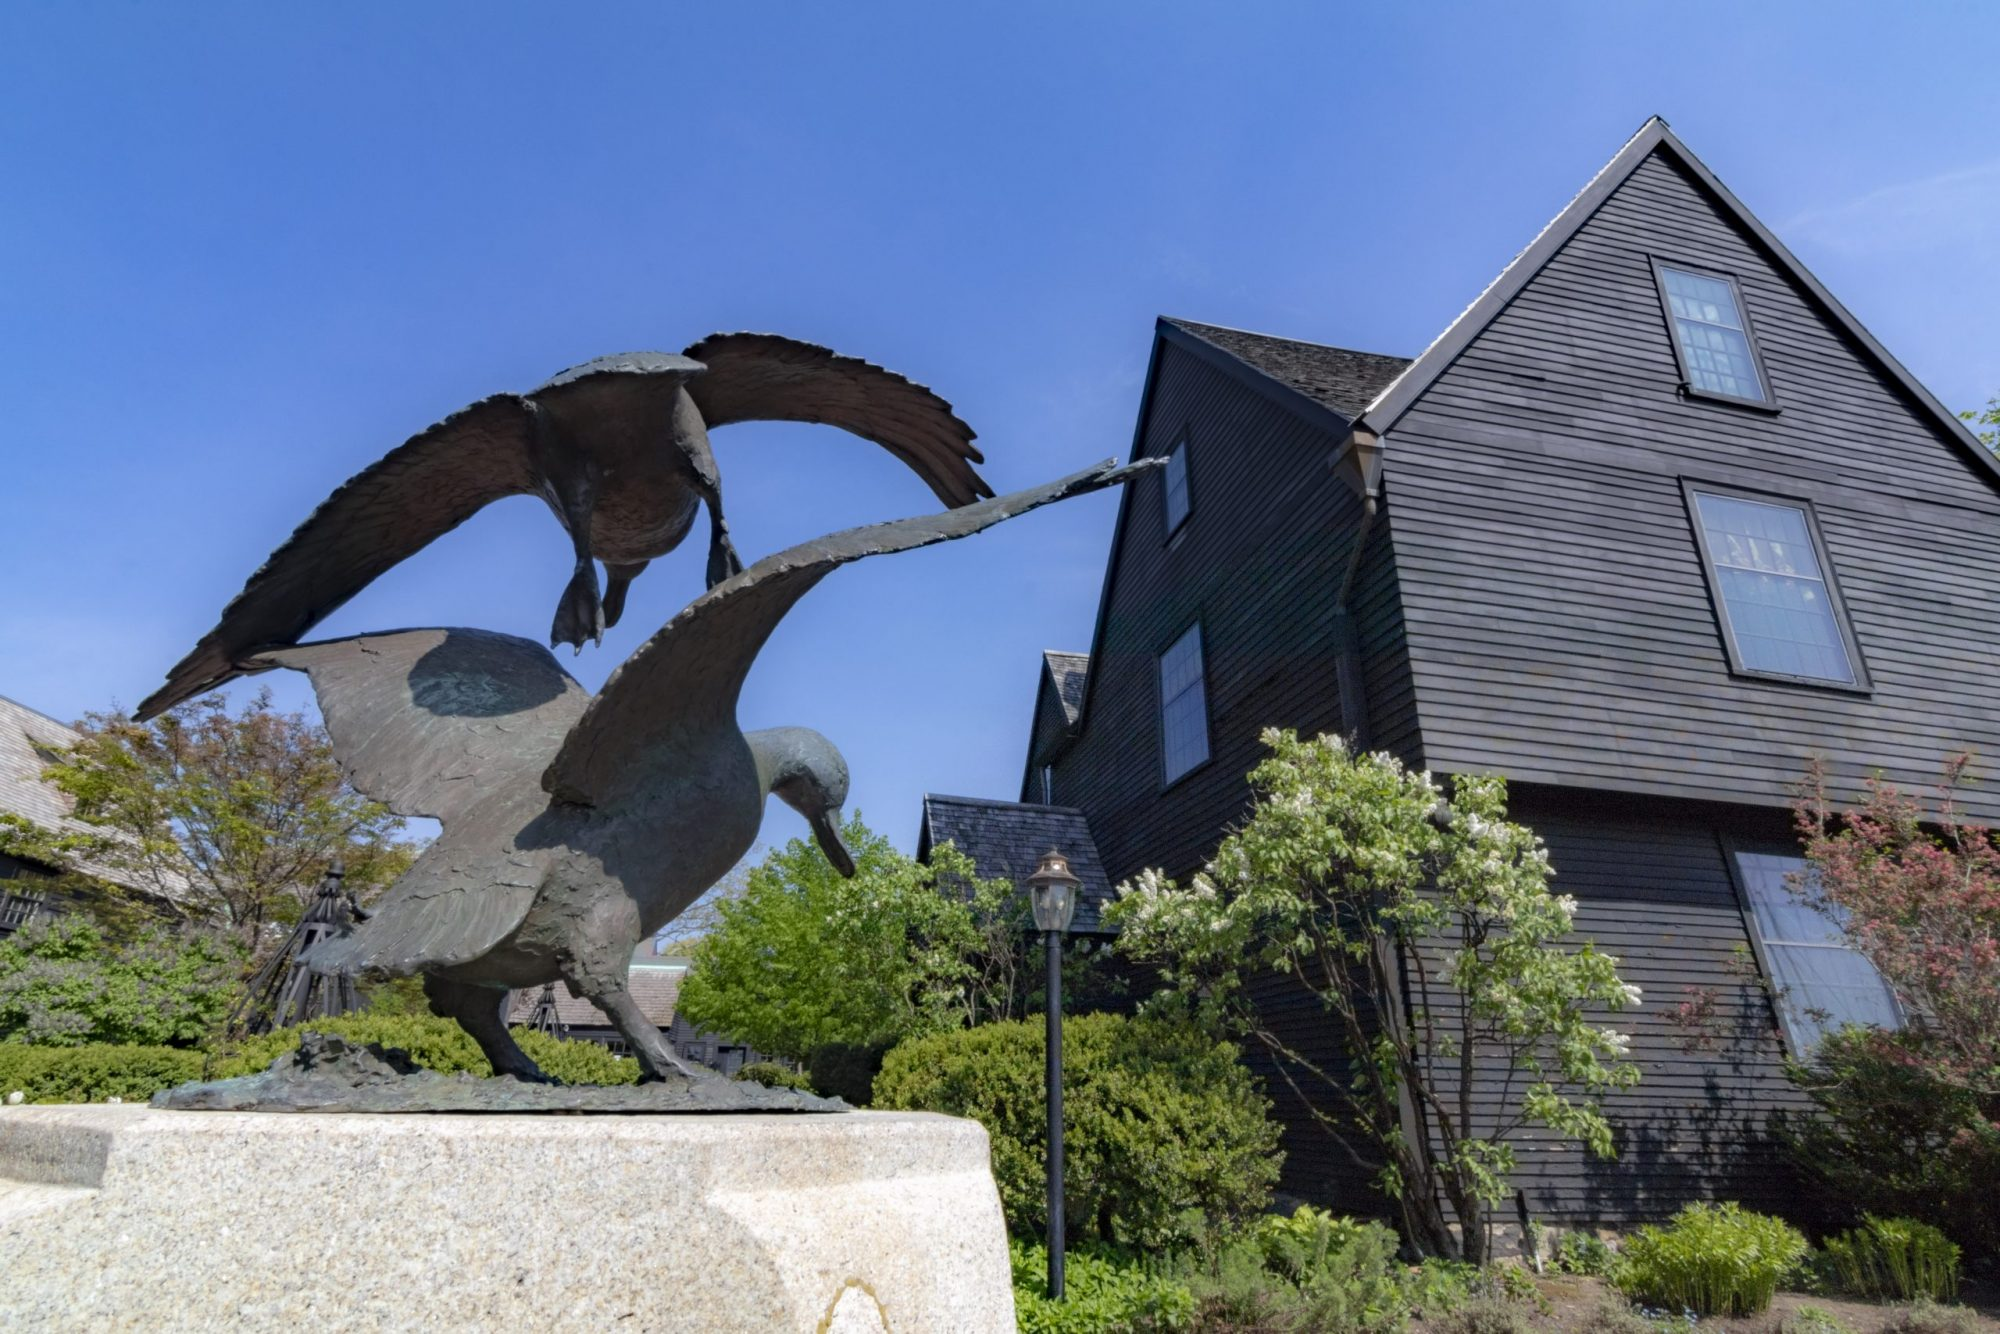 The gardens and grounds at The House of the Seven Gables Museum Campus